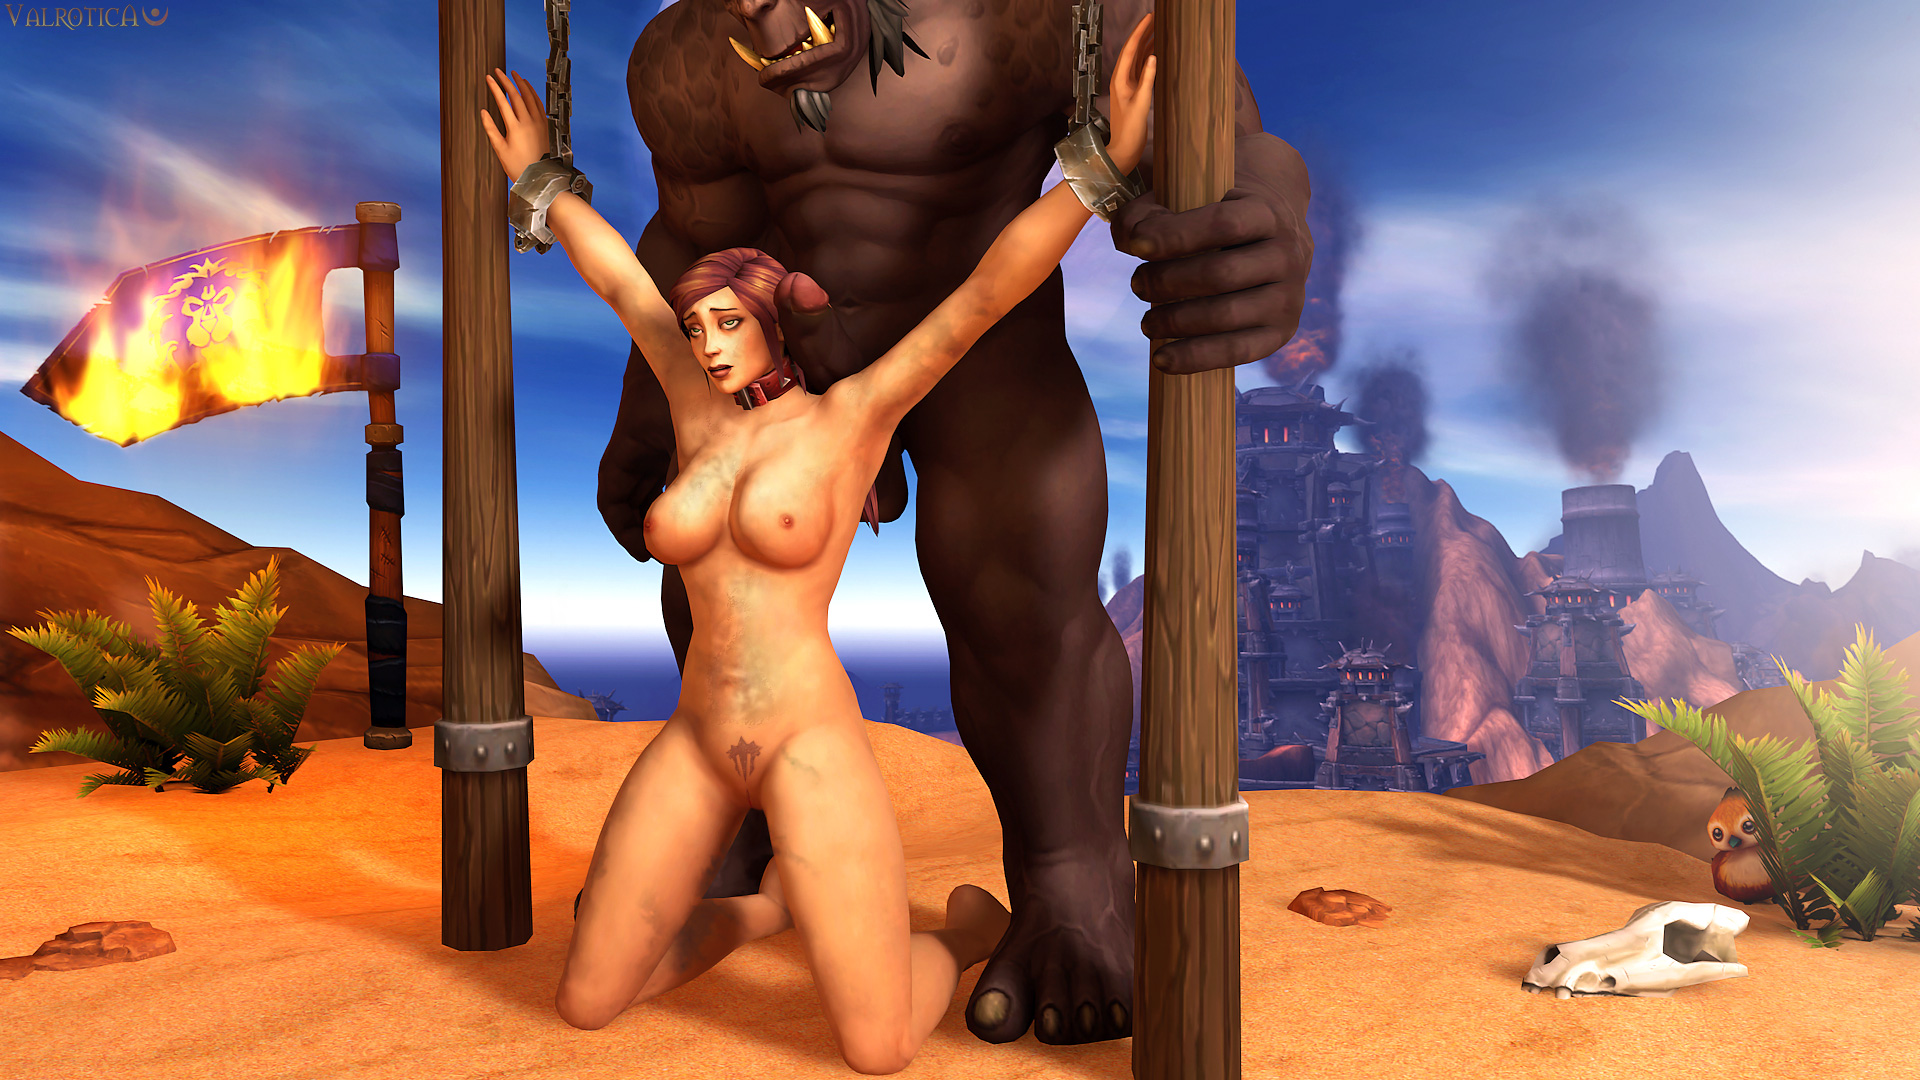 Hd sexy games screenshot pornos scenes